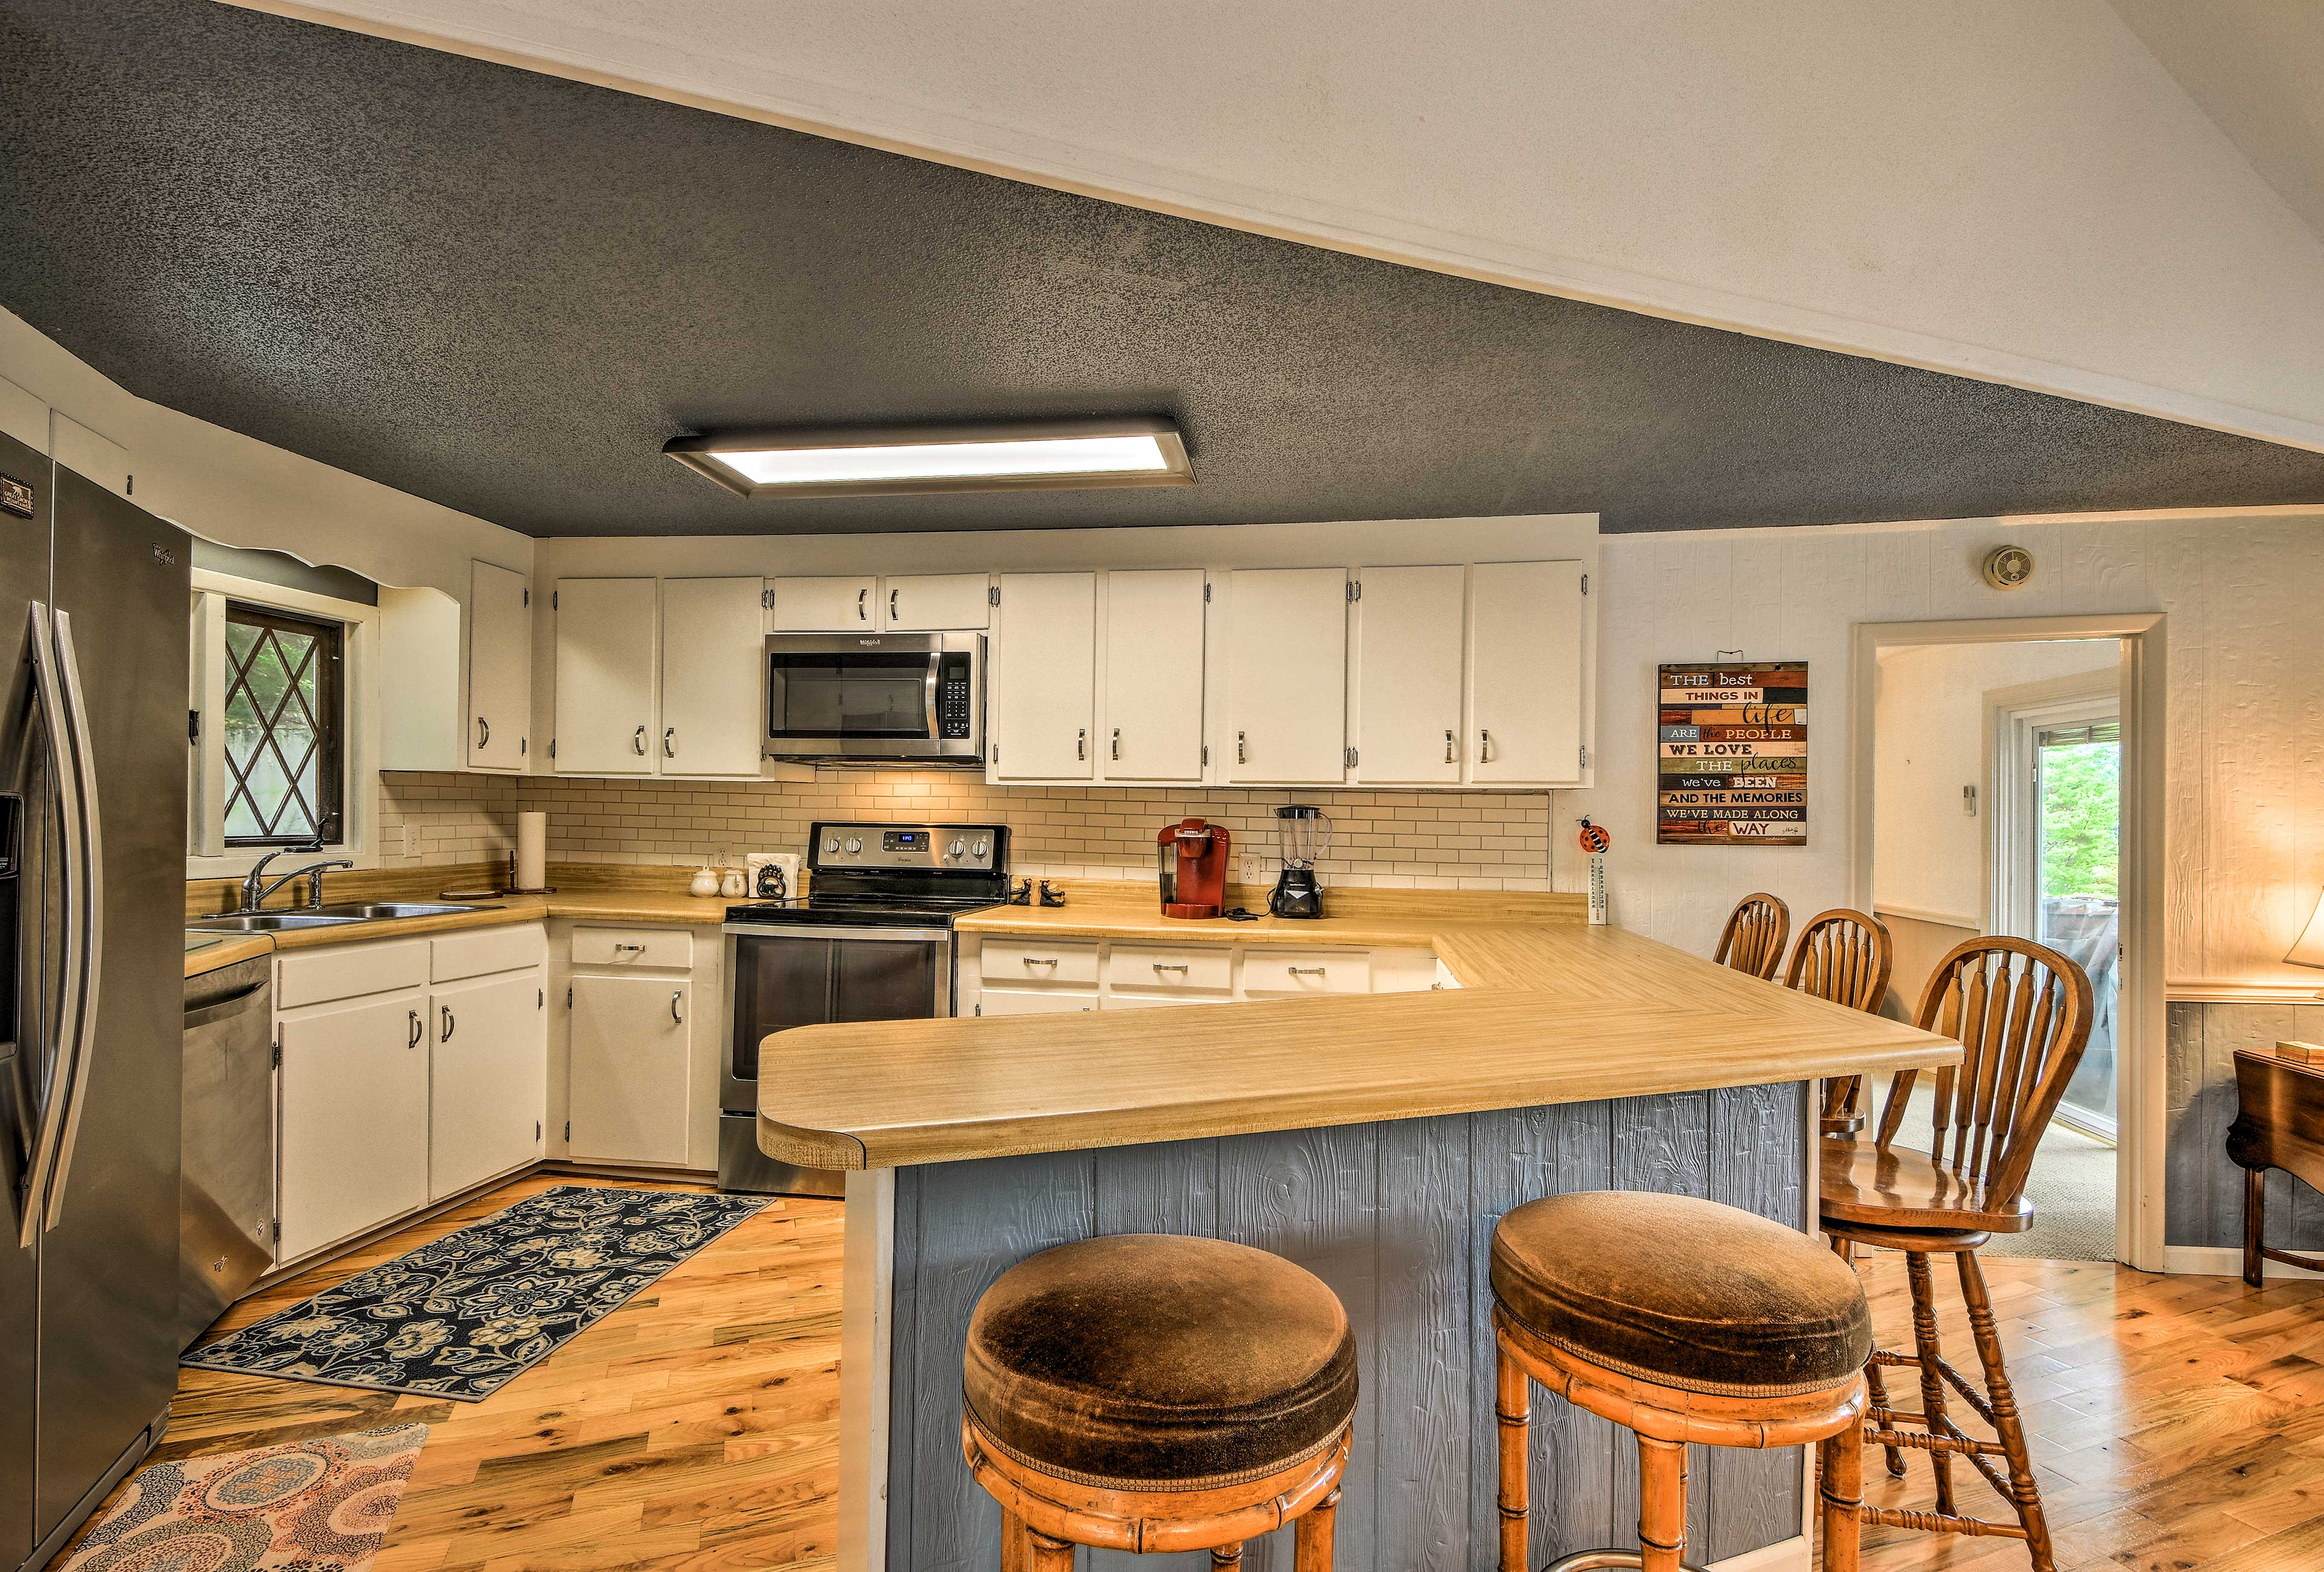 There's ample counter space for preparing and serving meals.